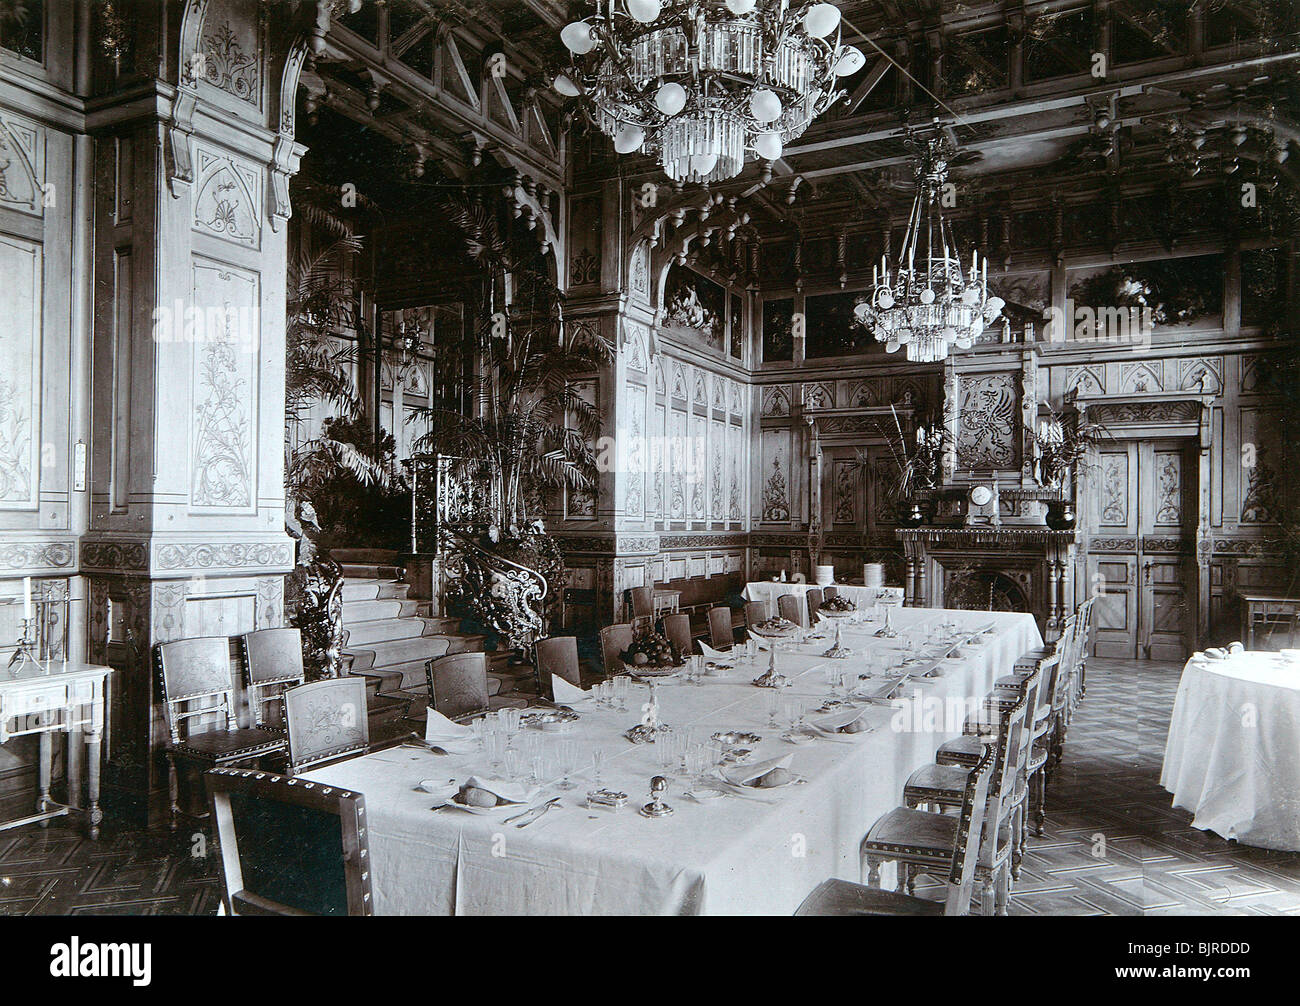 dining room of the imperial palace in bialowieza forest, russia